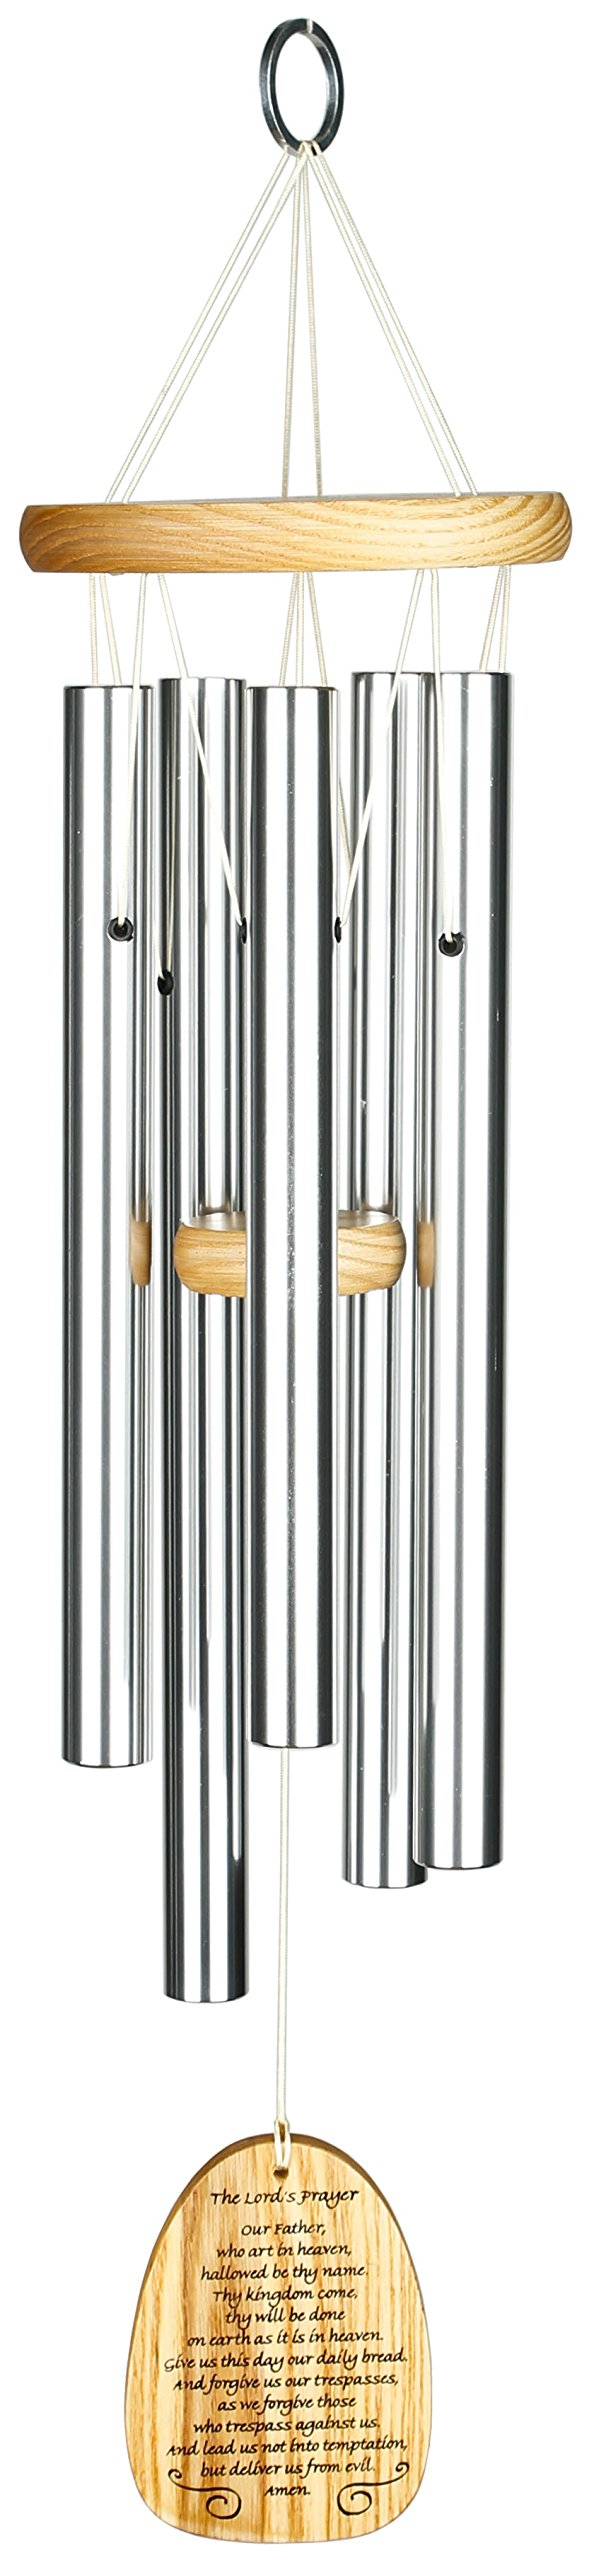 Woodstock Chimes WRLP Reflections Chime, The The Lord's Prayer by Woodstock Chimes